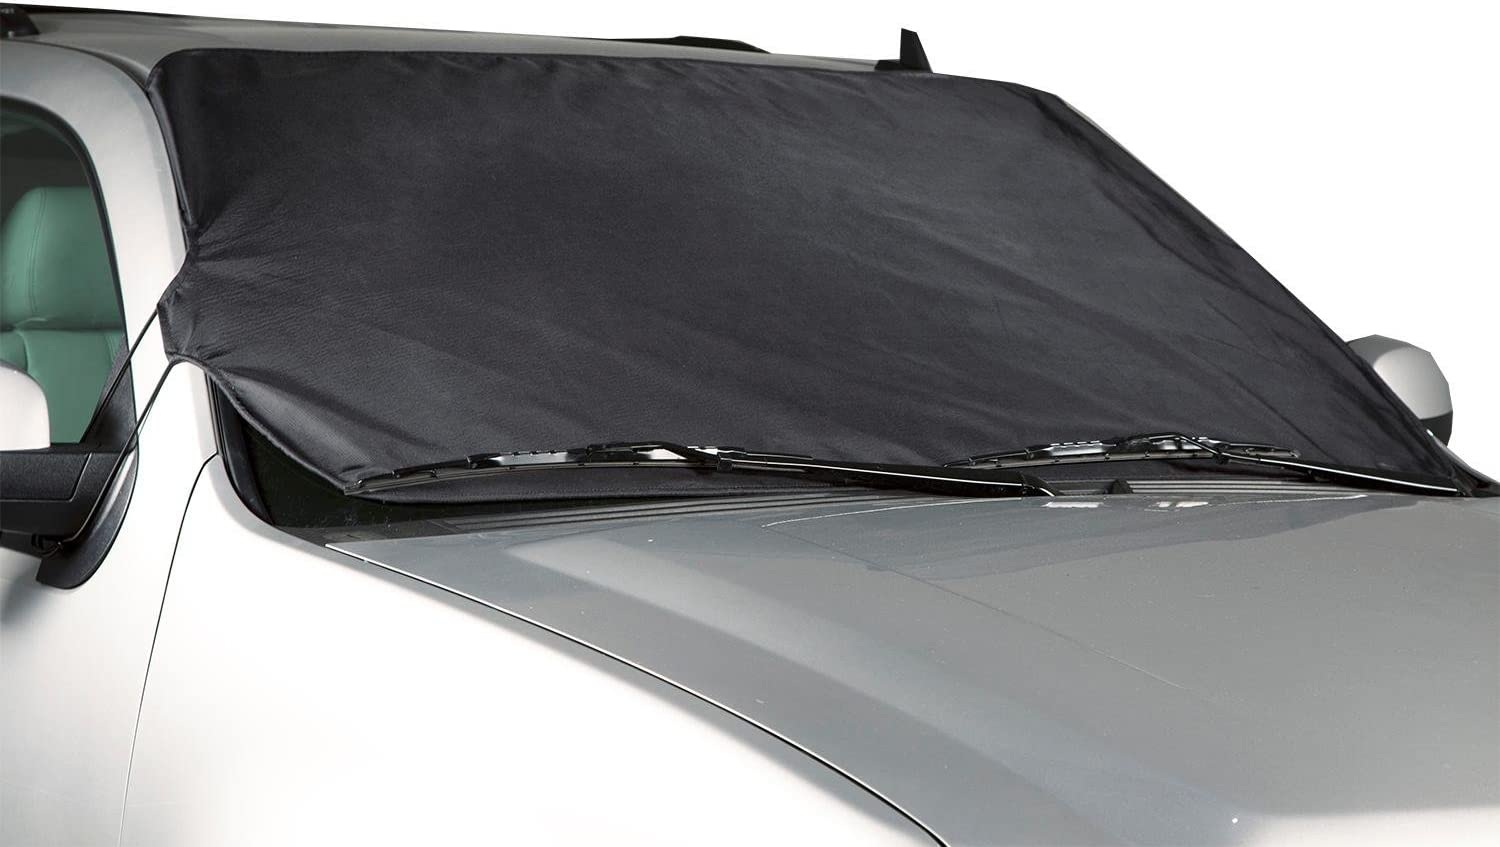 Coverking Custom Windshield Snow Cover Select Frost J Limited time cheap sale for Shield Finally popular brand